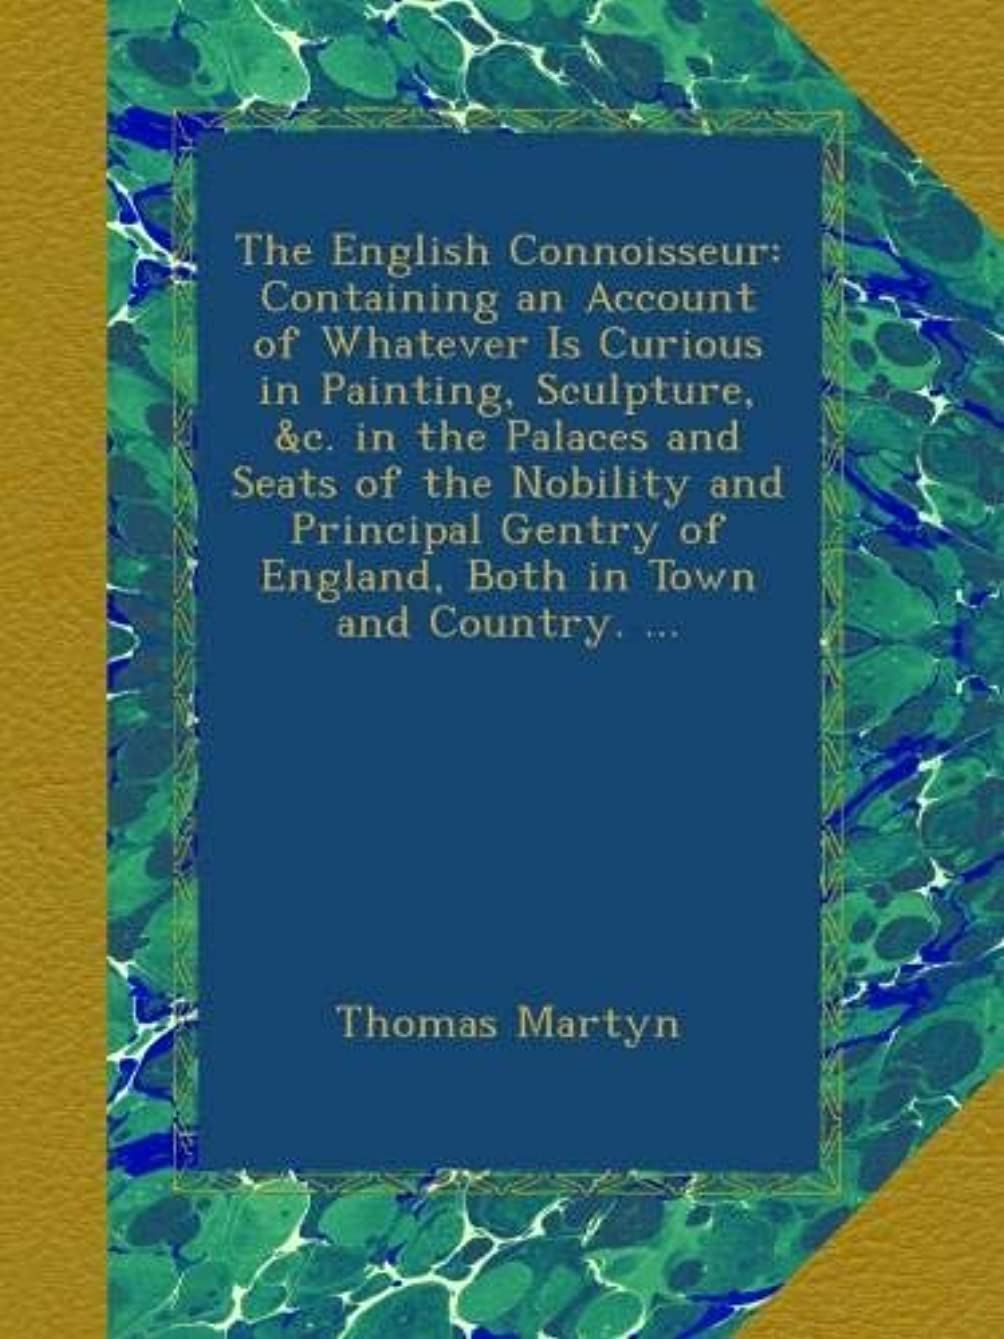 環境保護主義者提案するメタンThe English Connoisseur: Containing an Account of Whatever Is Curious in Painting, Sculpture, &c. in the Palaces and Seats of the Nobility and Principal Gentry of England, Both in Town and Country. ...